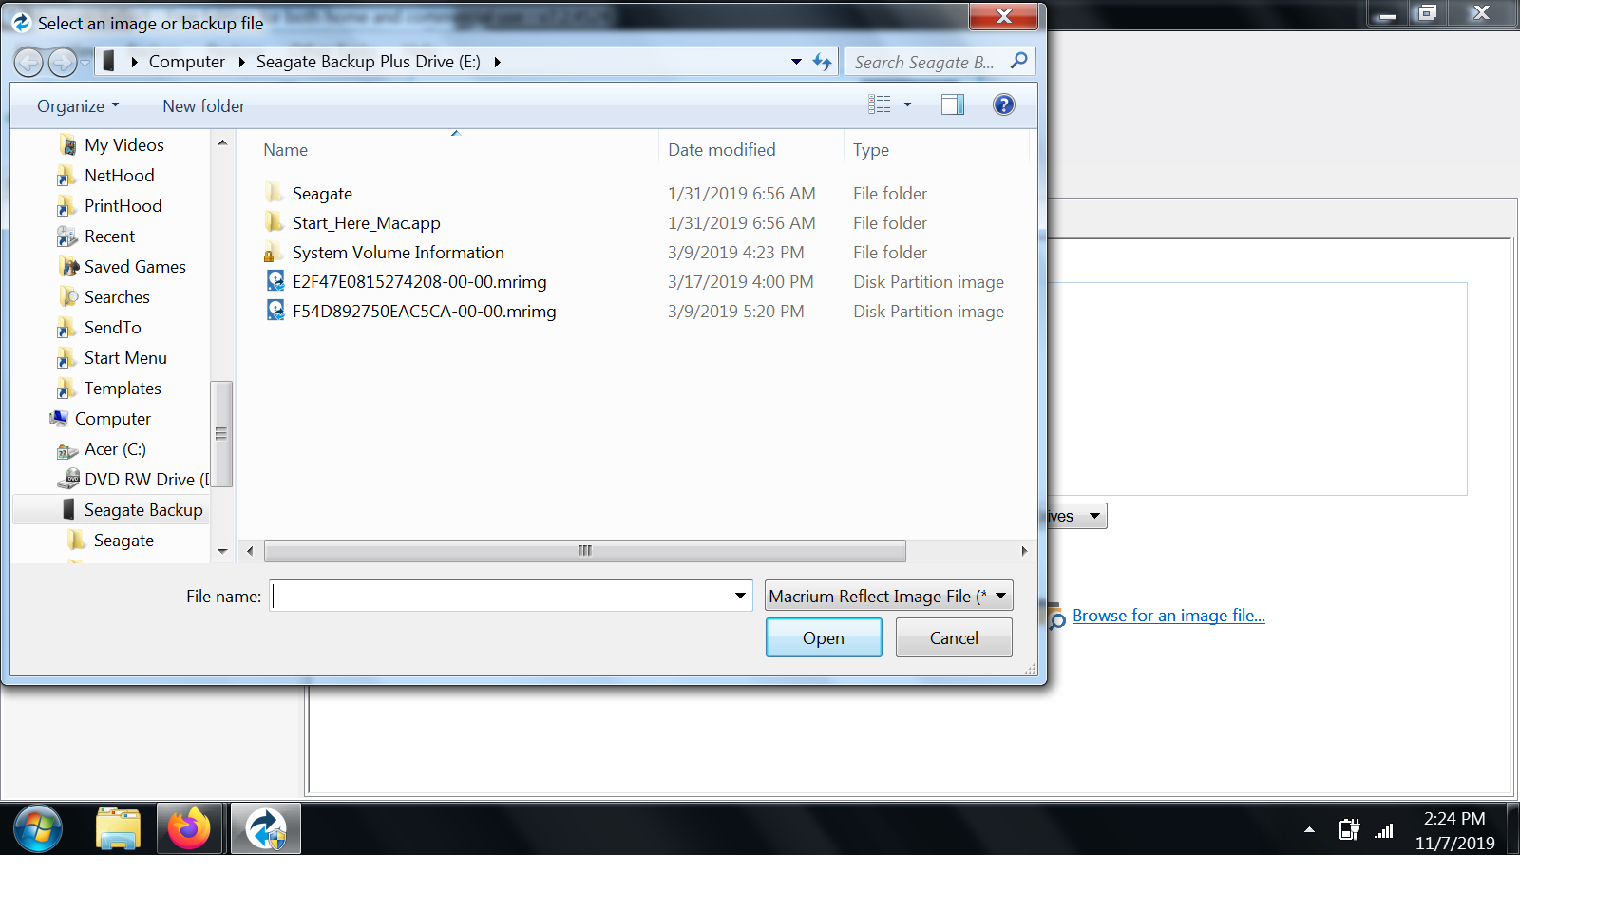 Browswe-for-image-or-backup-file-to-restore